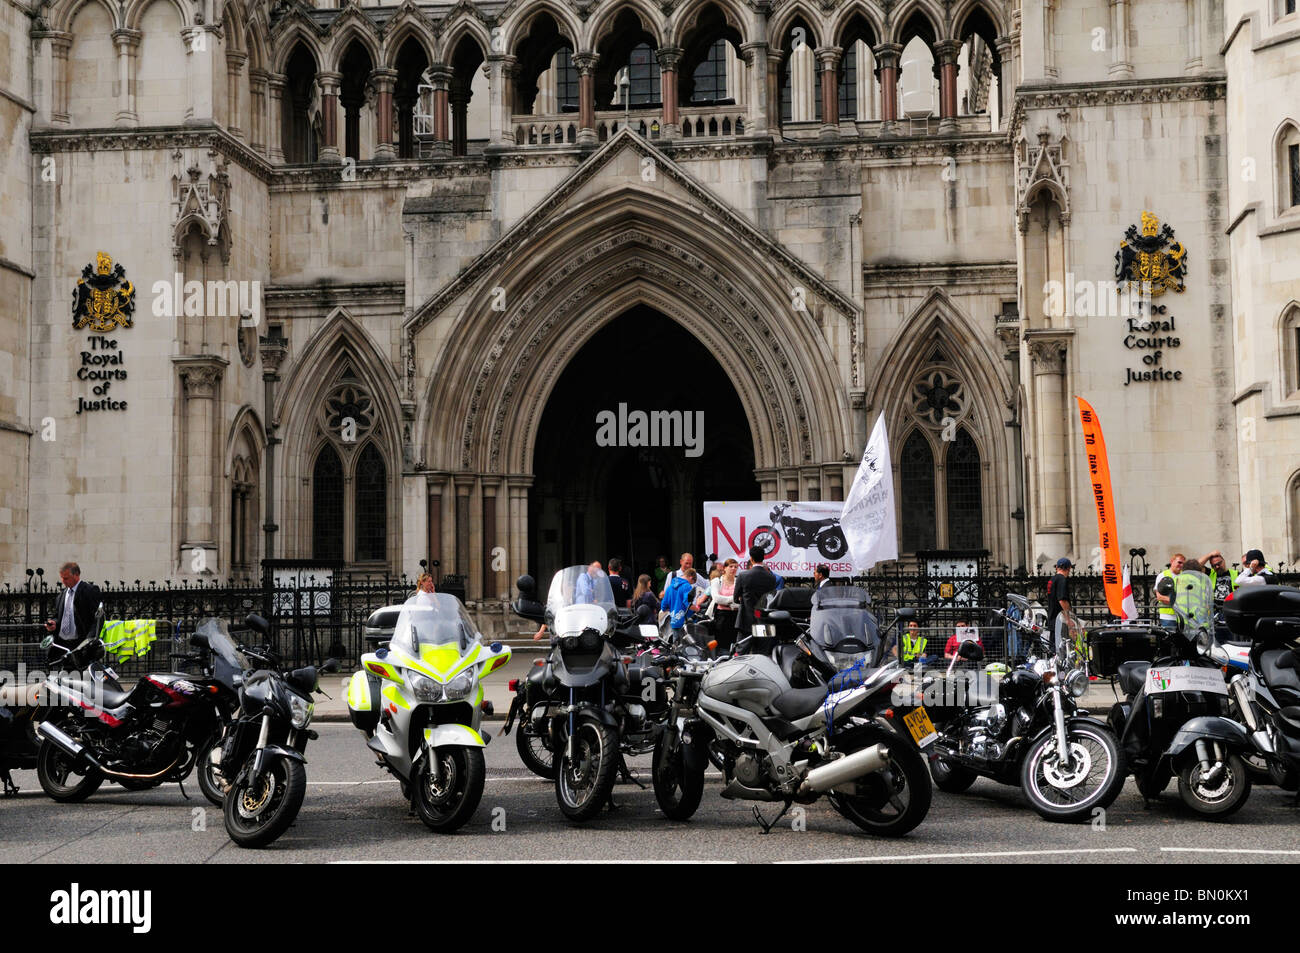 Protest against motorbike parking charges outside The Royal Courts of Justice, The Strand, London, England, UK - Stock Image